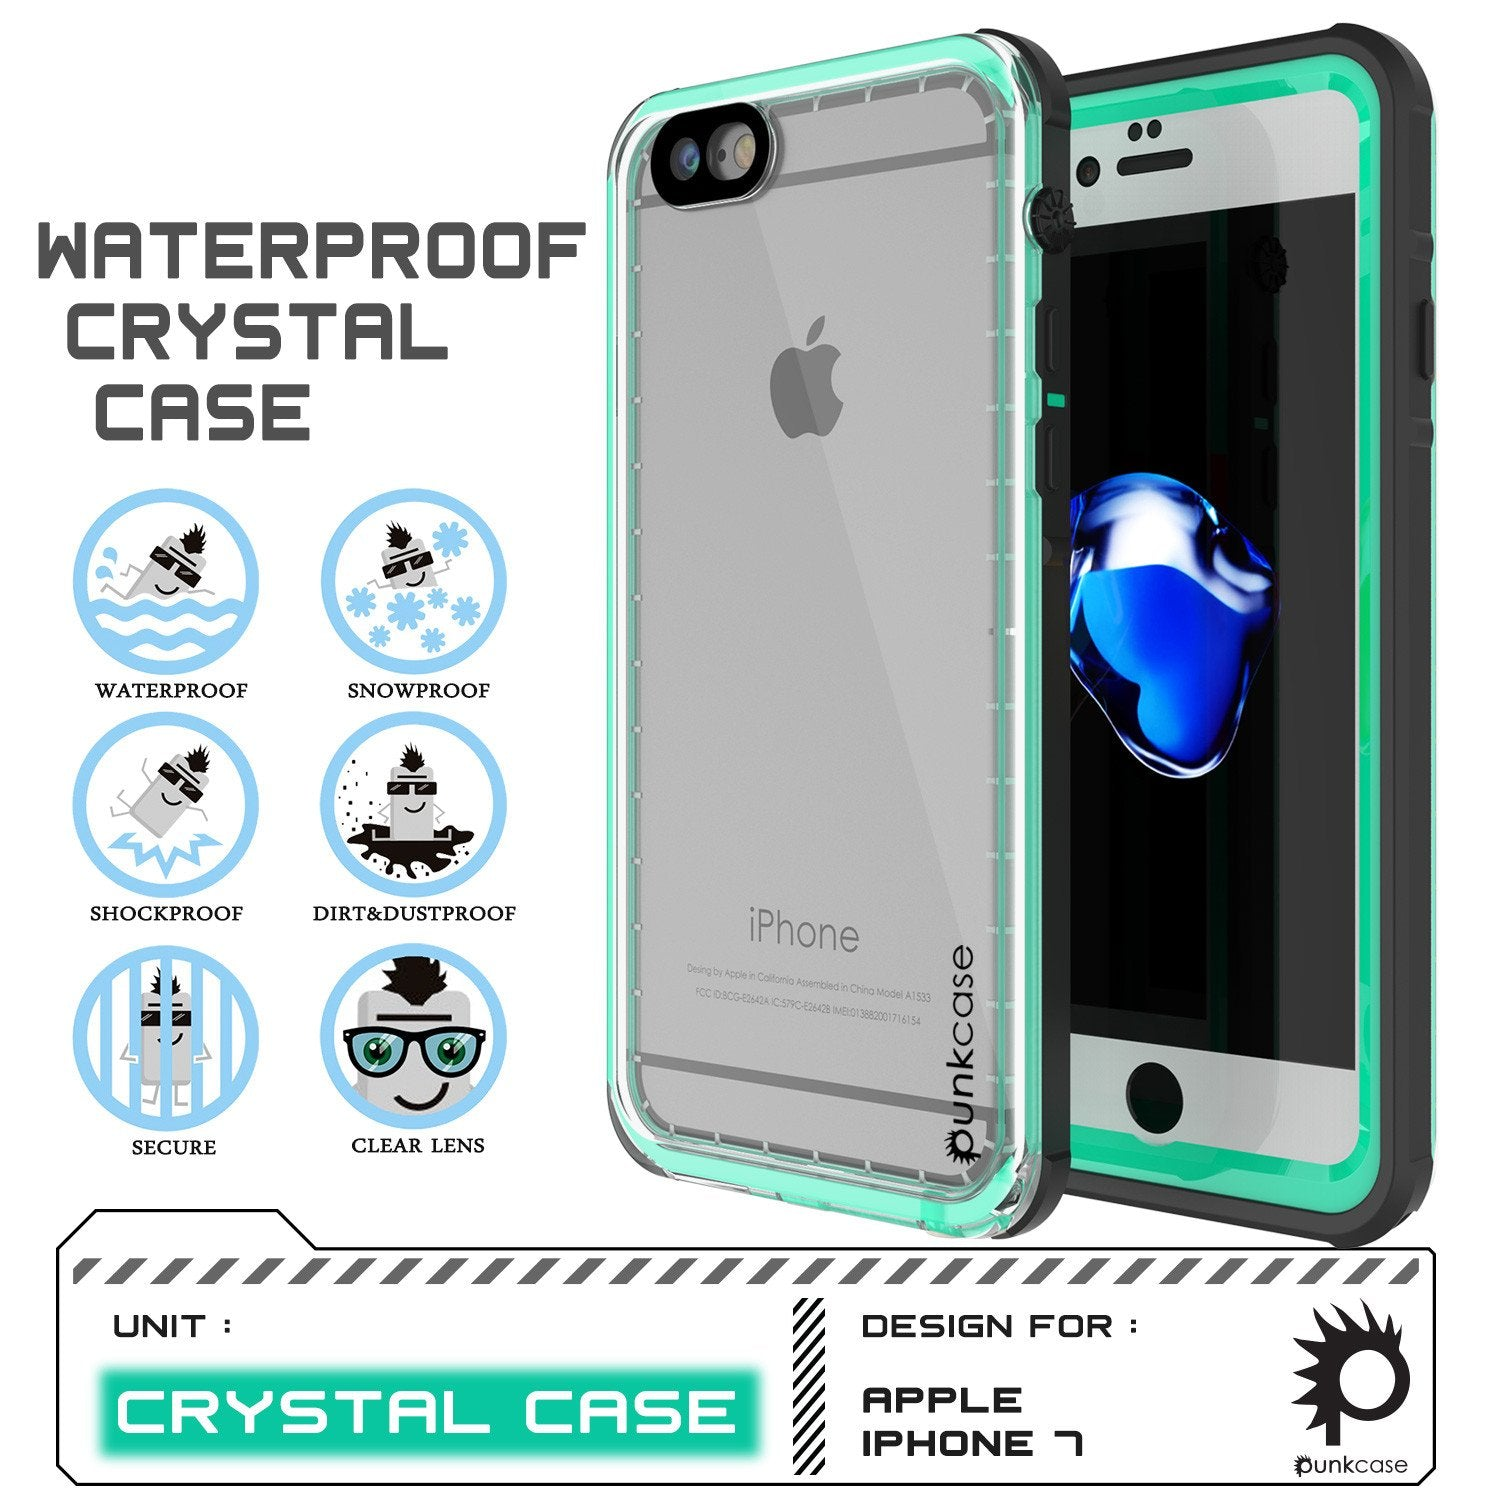 Apple iPhone 8 Waterproof Case, PUNKcase CRYSTAL Teal W/ Attached Screen Protector  | Warranty